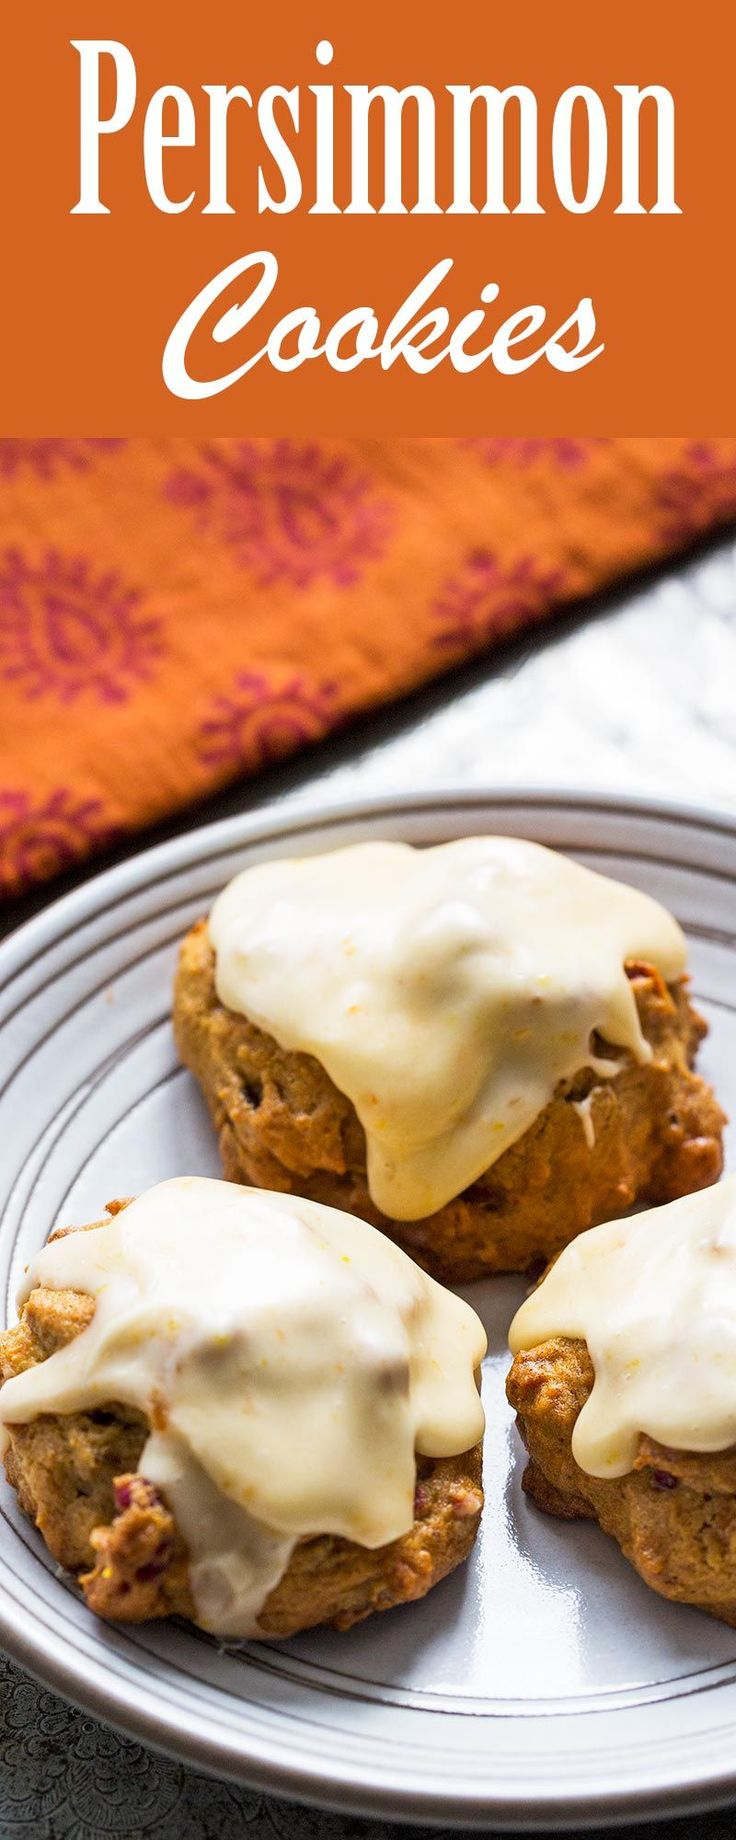 Spicy persimmon cookies recipe made with ripe persimmons and with a persimmon orange sugar glaze.